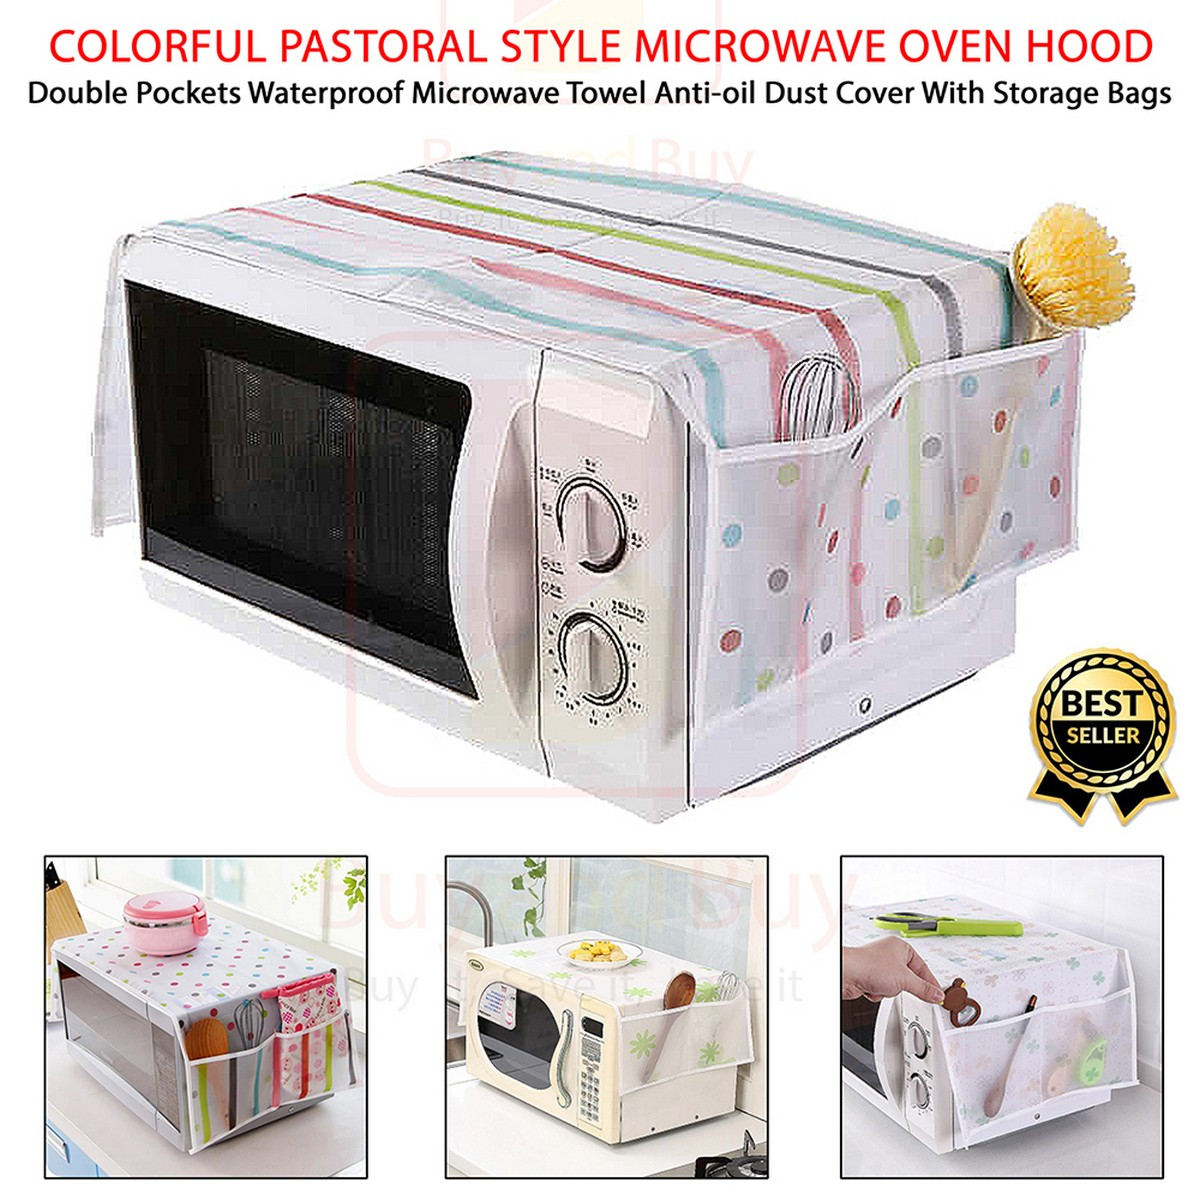 Colorful Pastoral Style Microwave Oven Hood Double Pockets Waterproof Microwave Towel Anti-oil Dust Cover With Storage Bags